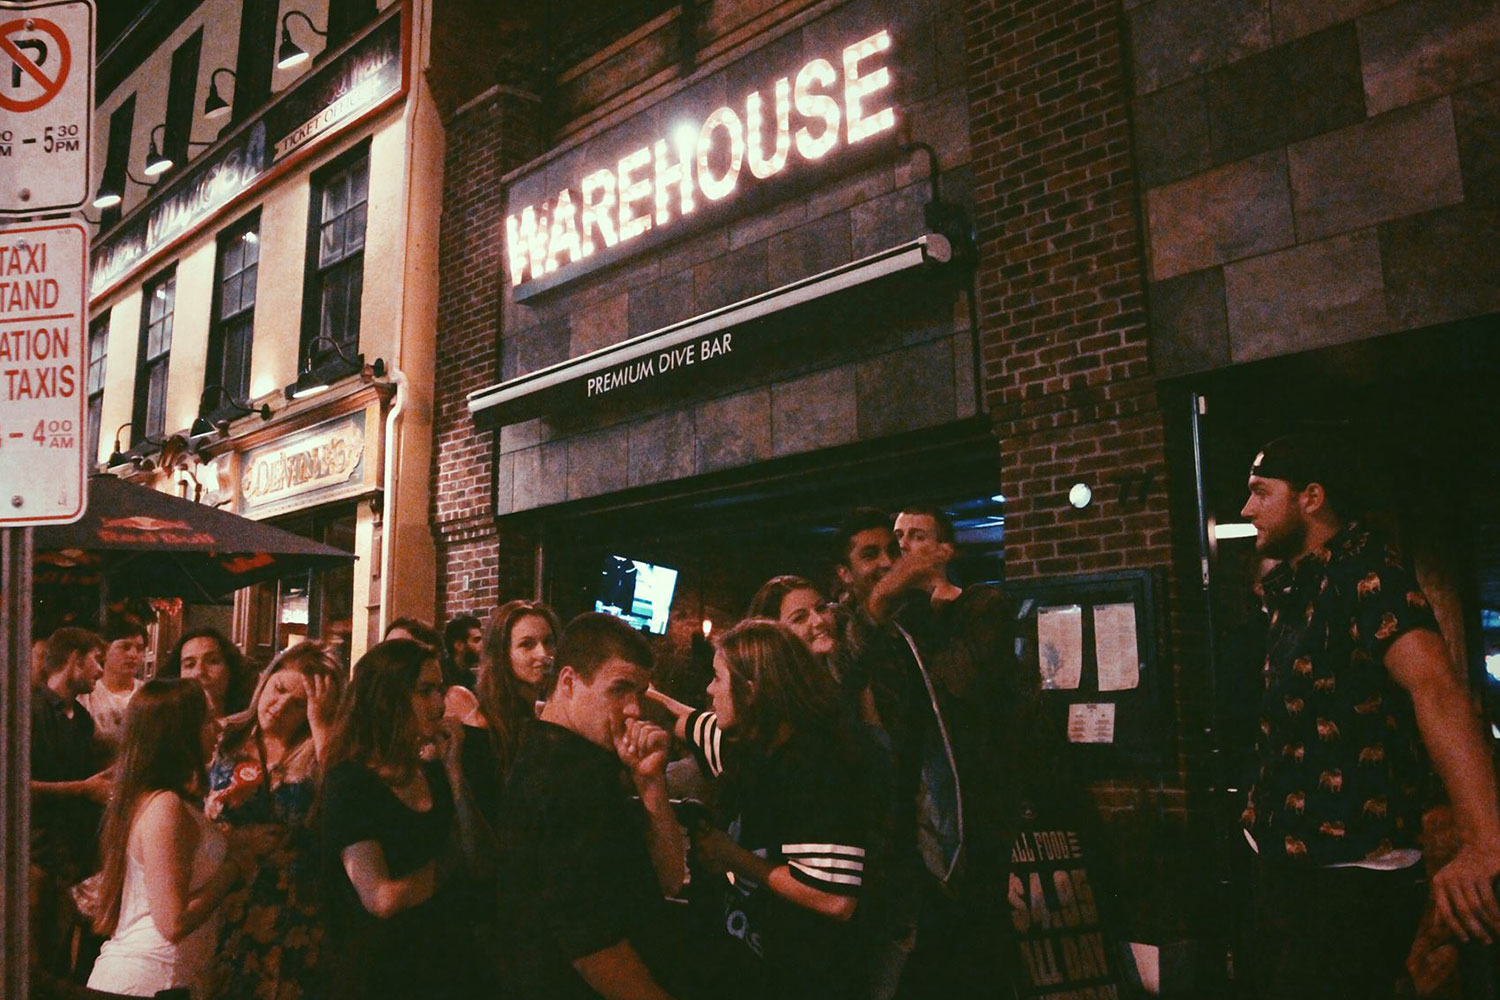 Warehouse_Ottawa_1.jpg